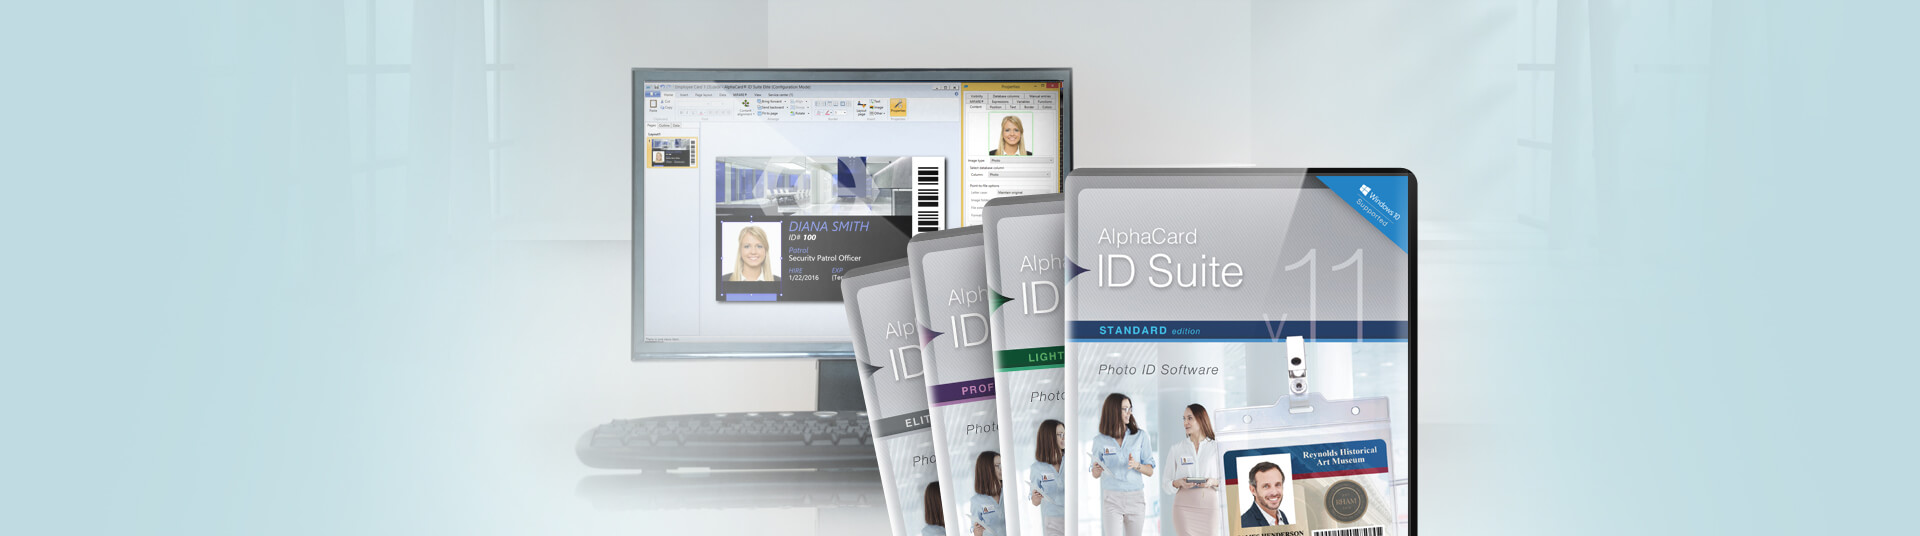 ID Suite for PC